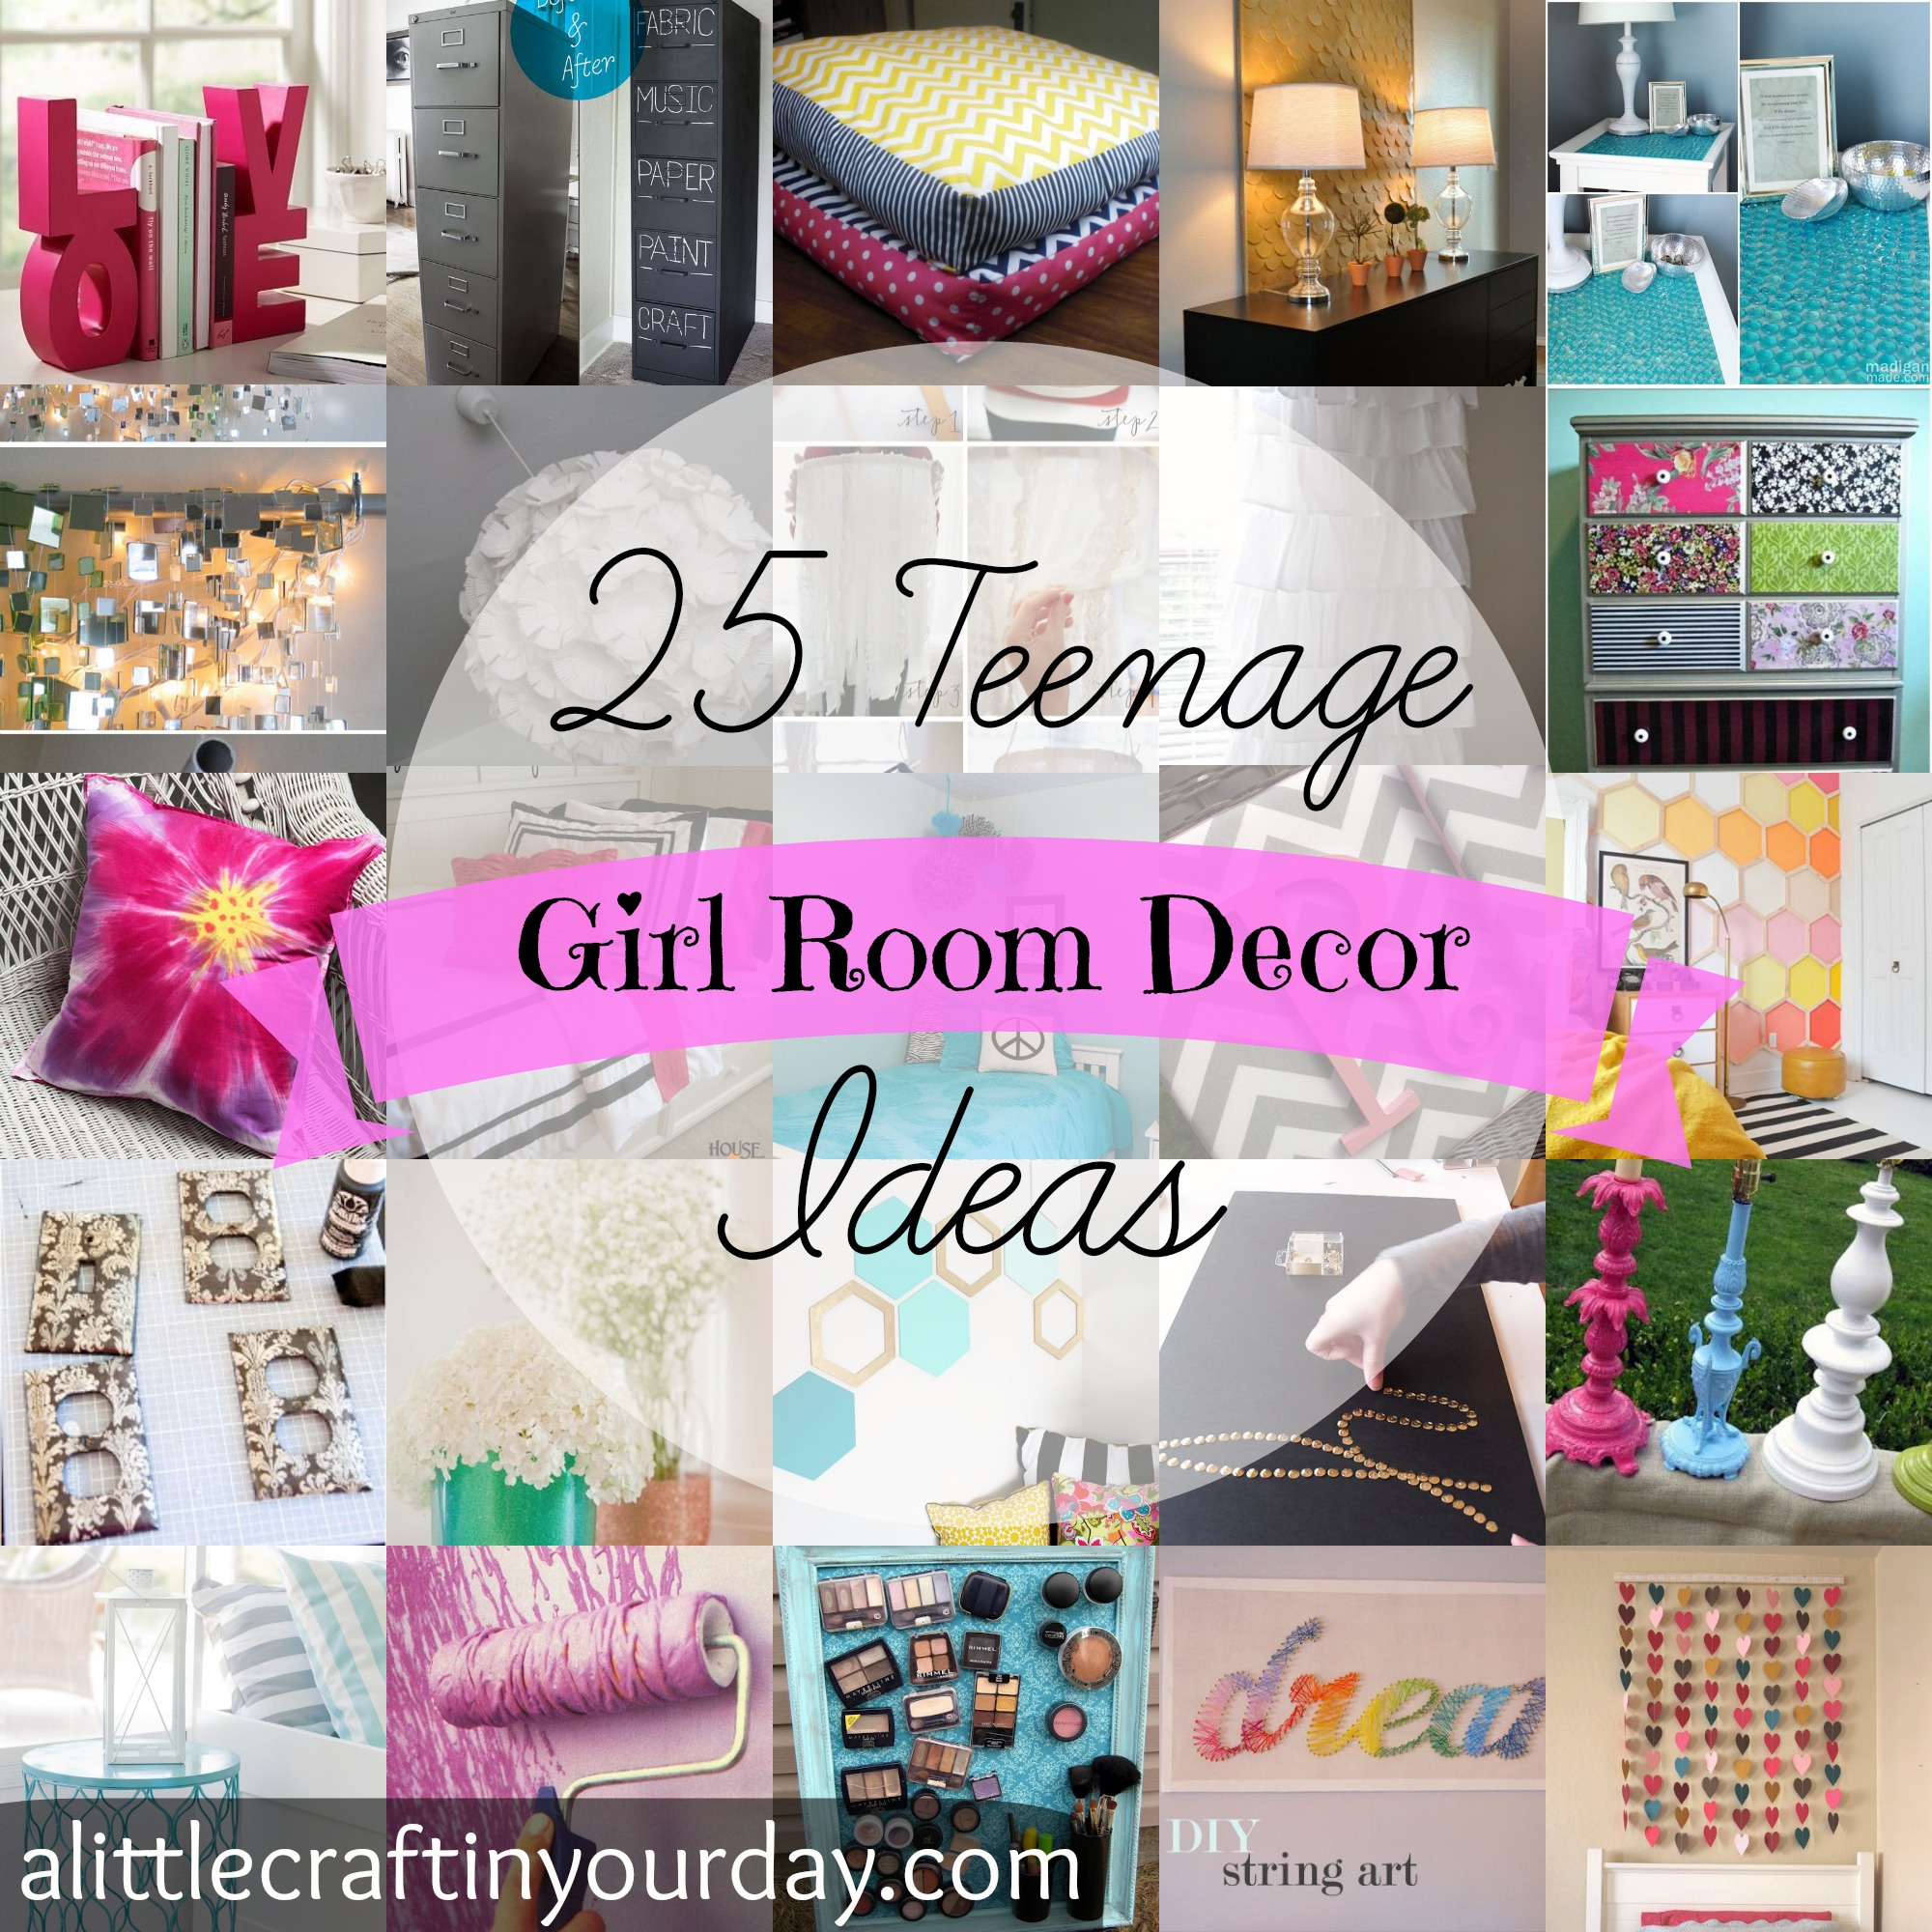 12 DIY Spring Room Decor Ideas - Craft Teen